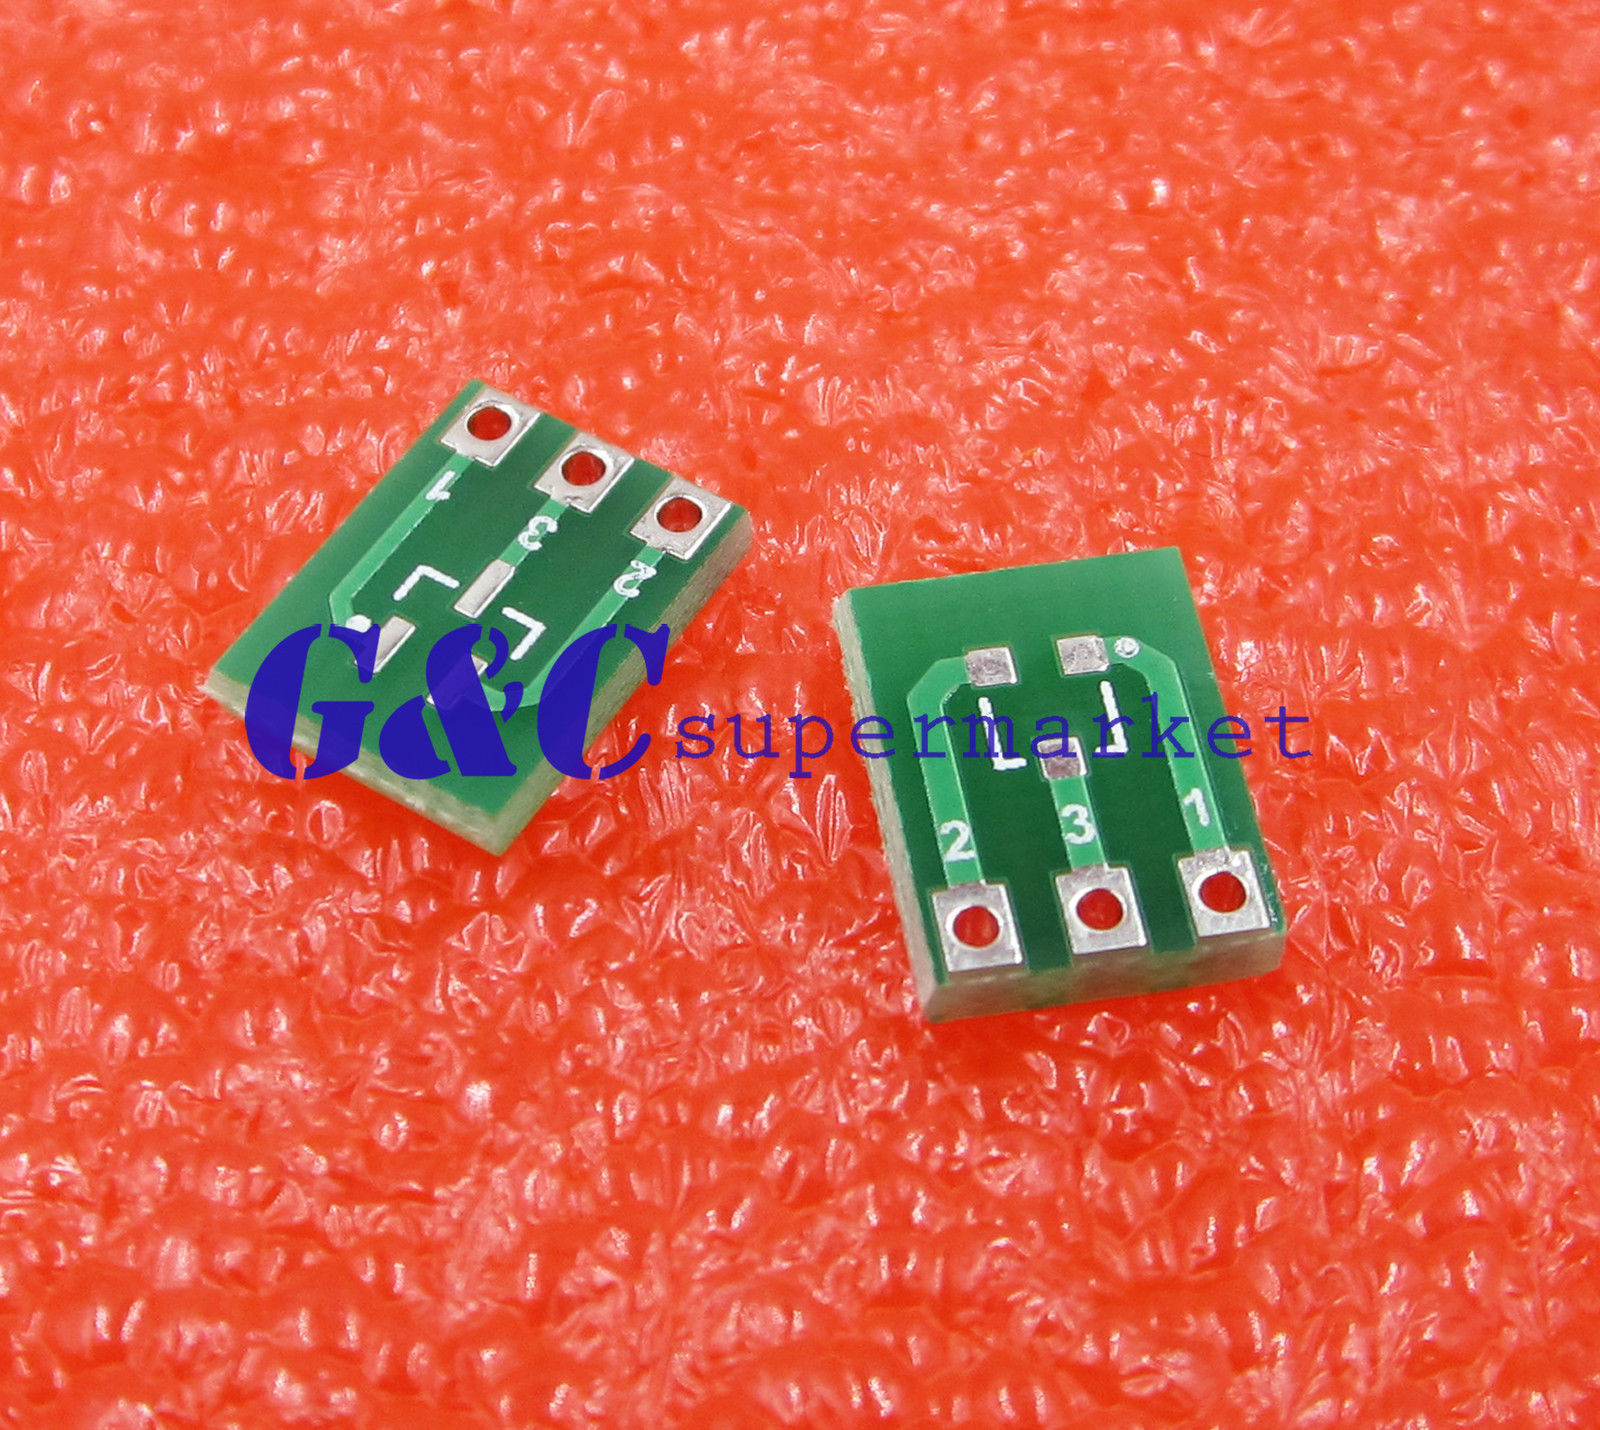 10pcs New Double Side Smd Sot23 3 To Dip Sip3 Adapter Pcb Board Diy Sot 23 139